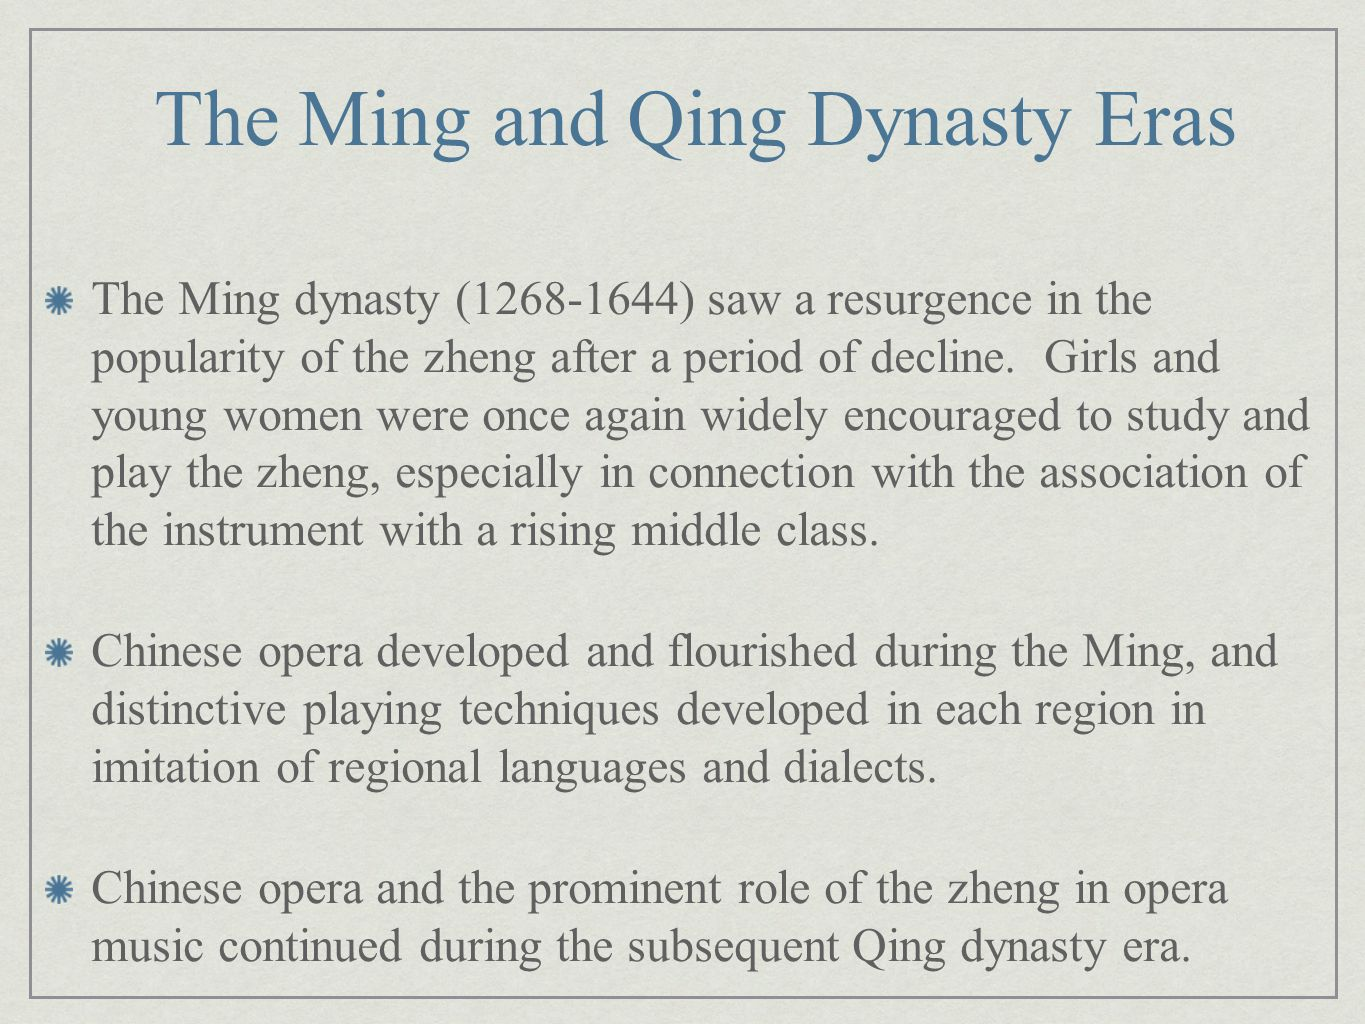 The Ming and Qing Dynasty Eras